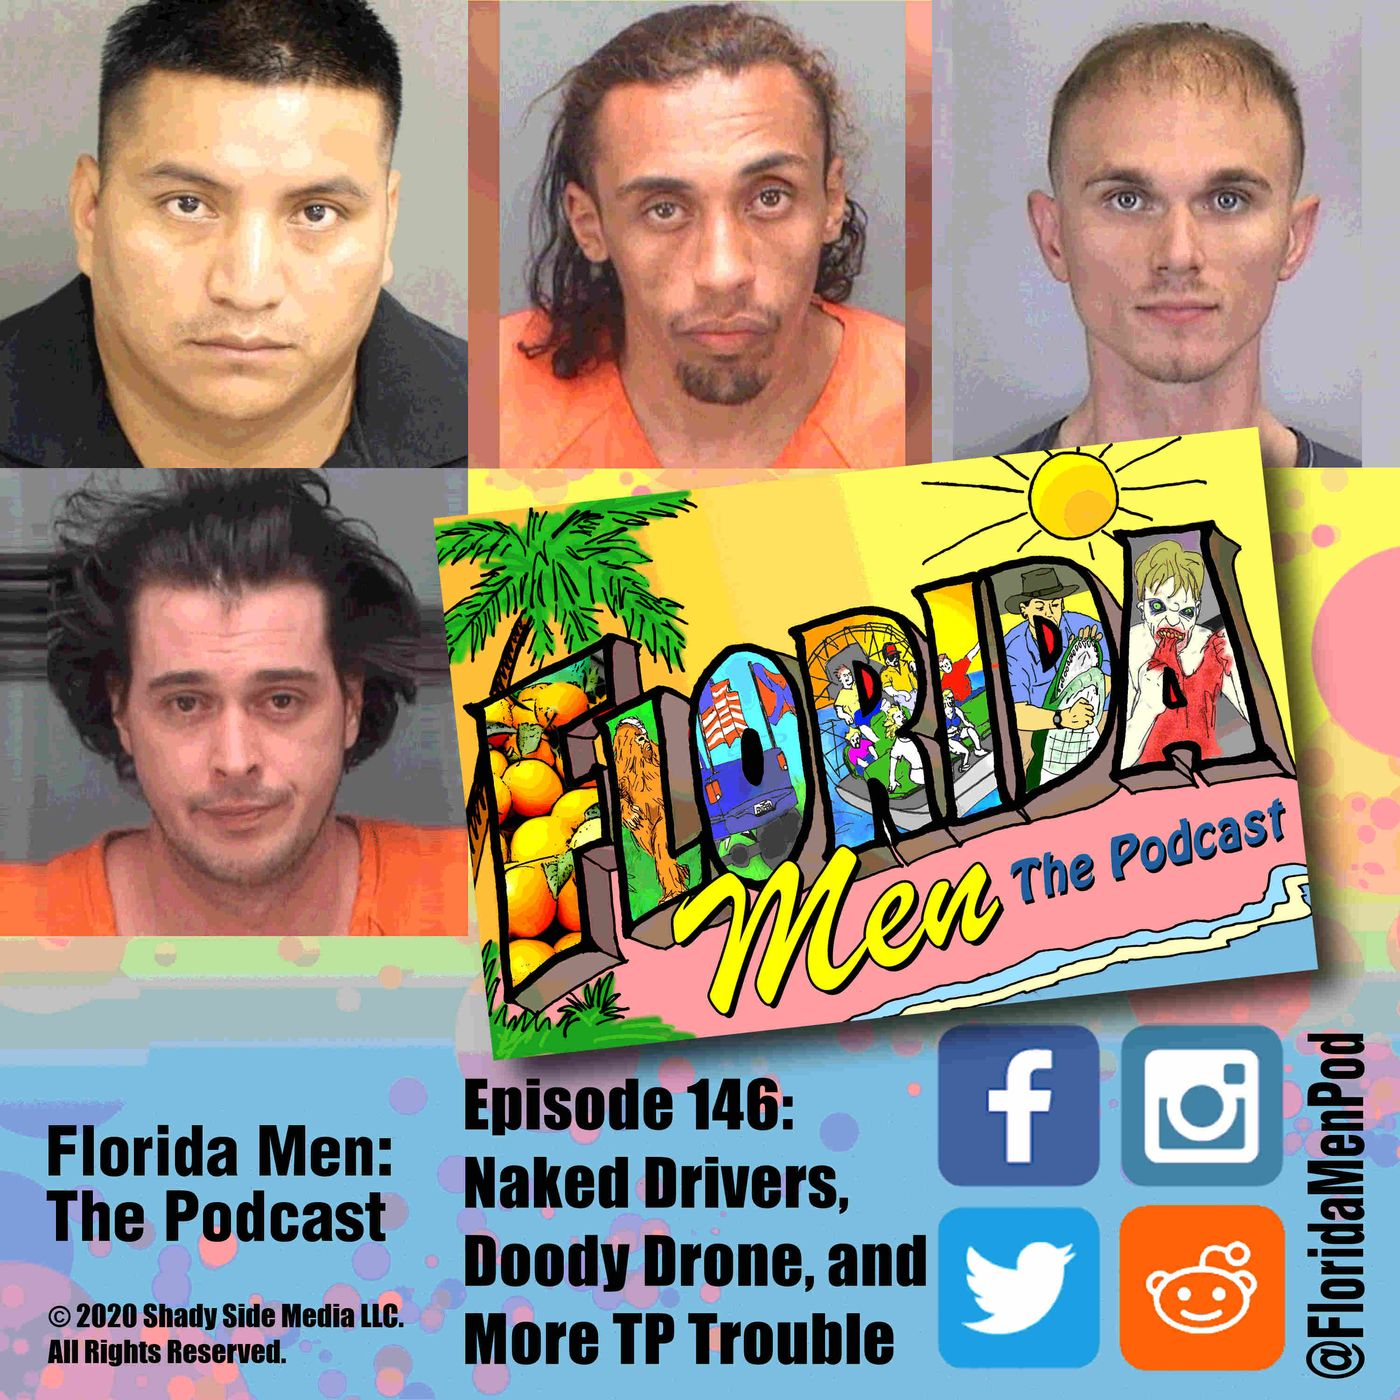 146 - Naked Drivers, Doody Drone, and More TP Trouble